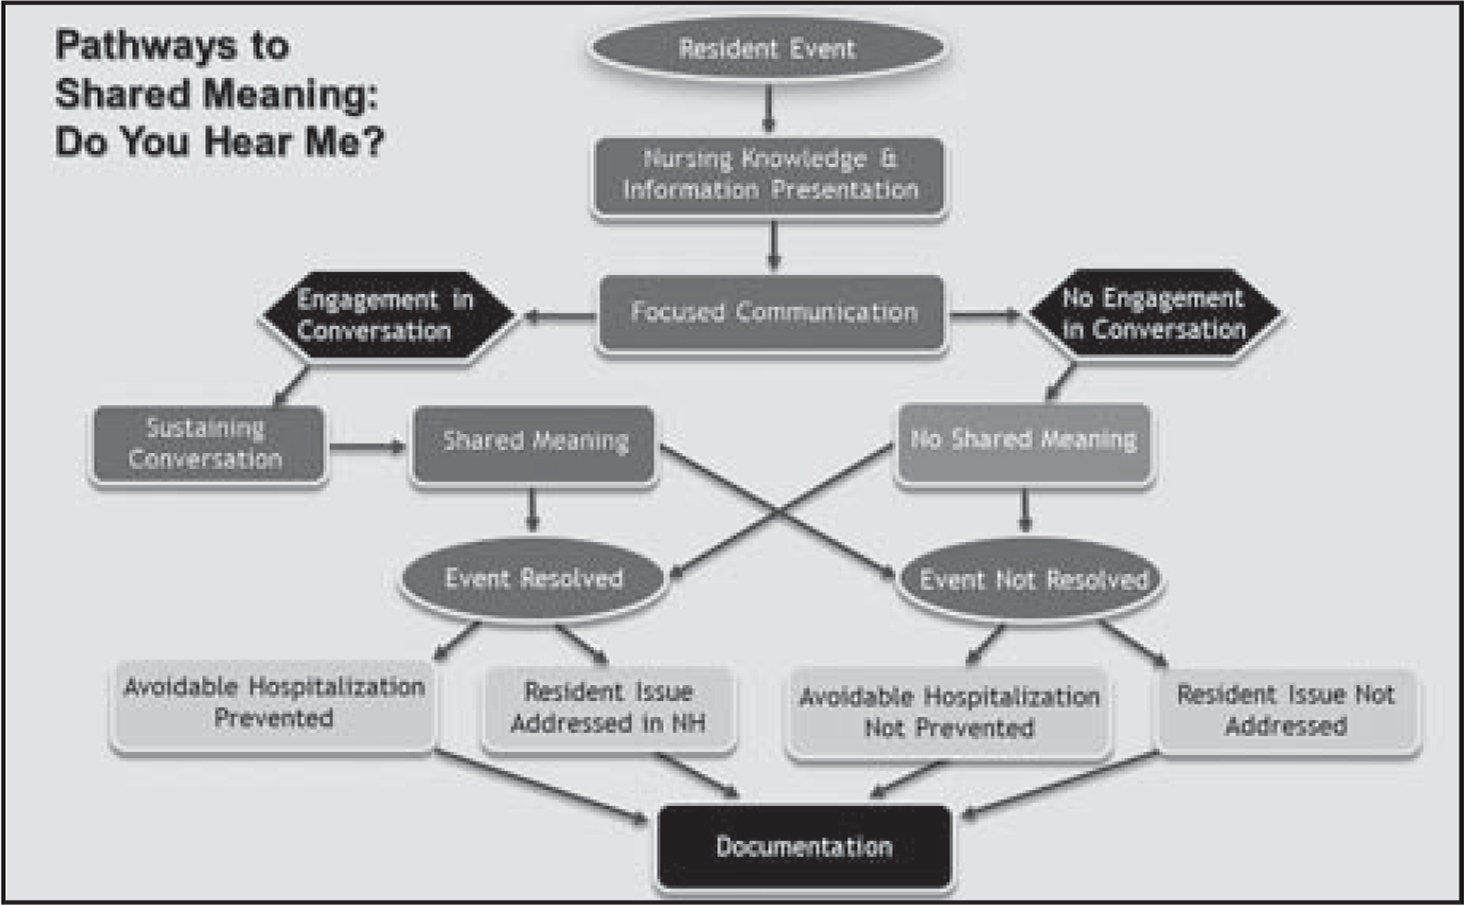 Pathways to Shared Meaning.